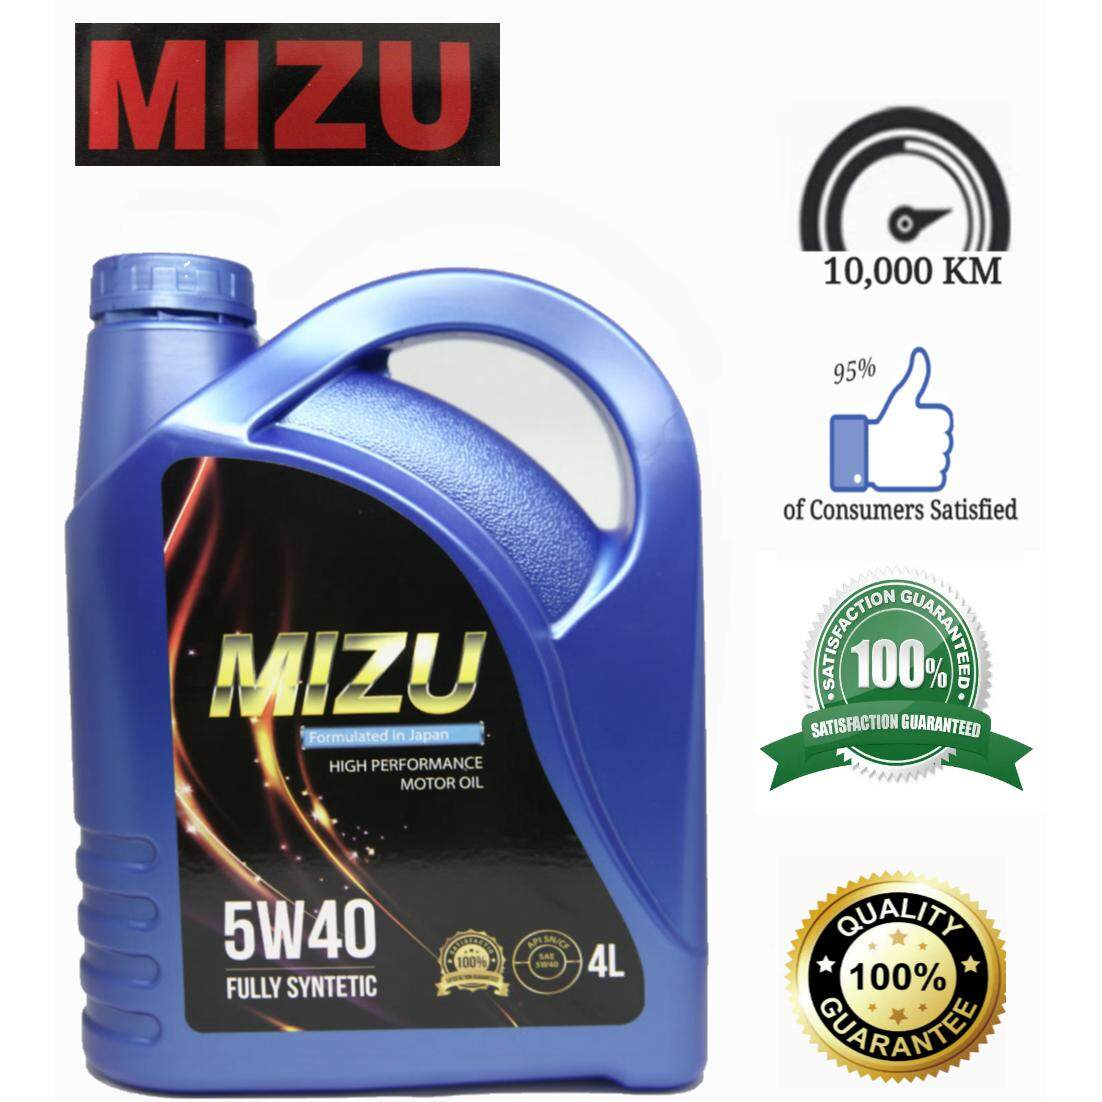 Mizu Fully-Synthetic Lubricant 5W-40 Engine Oil - 4 litres [Limited Time Promotion]